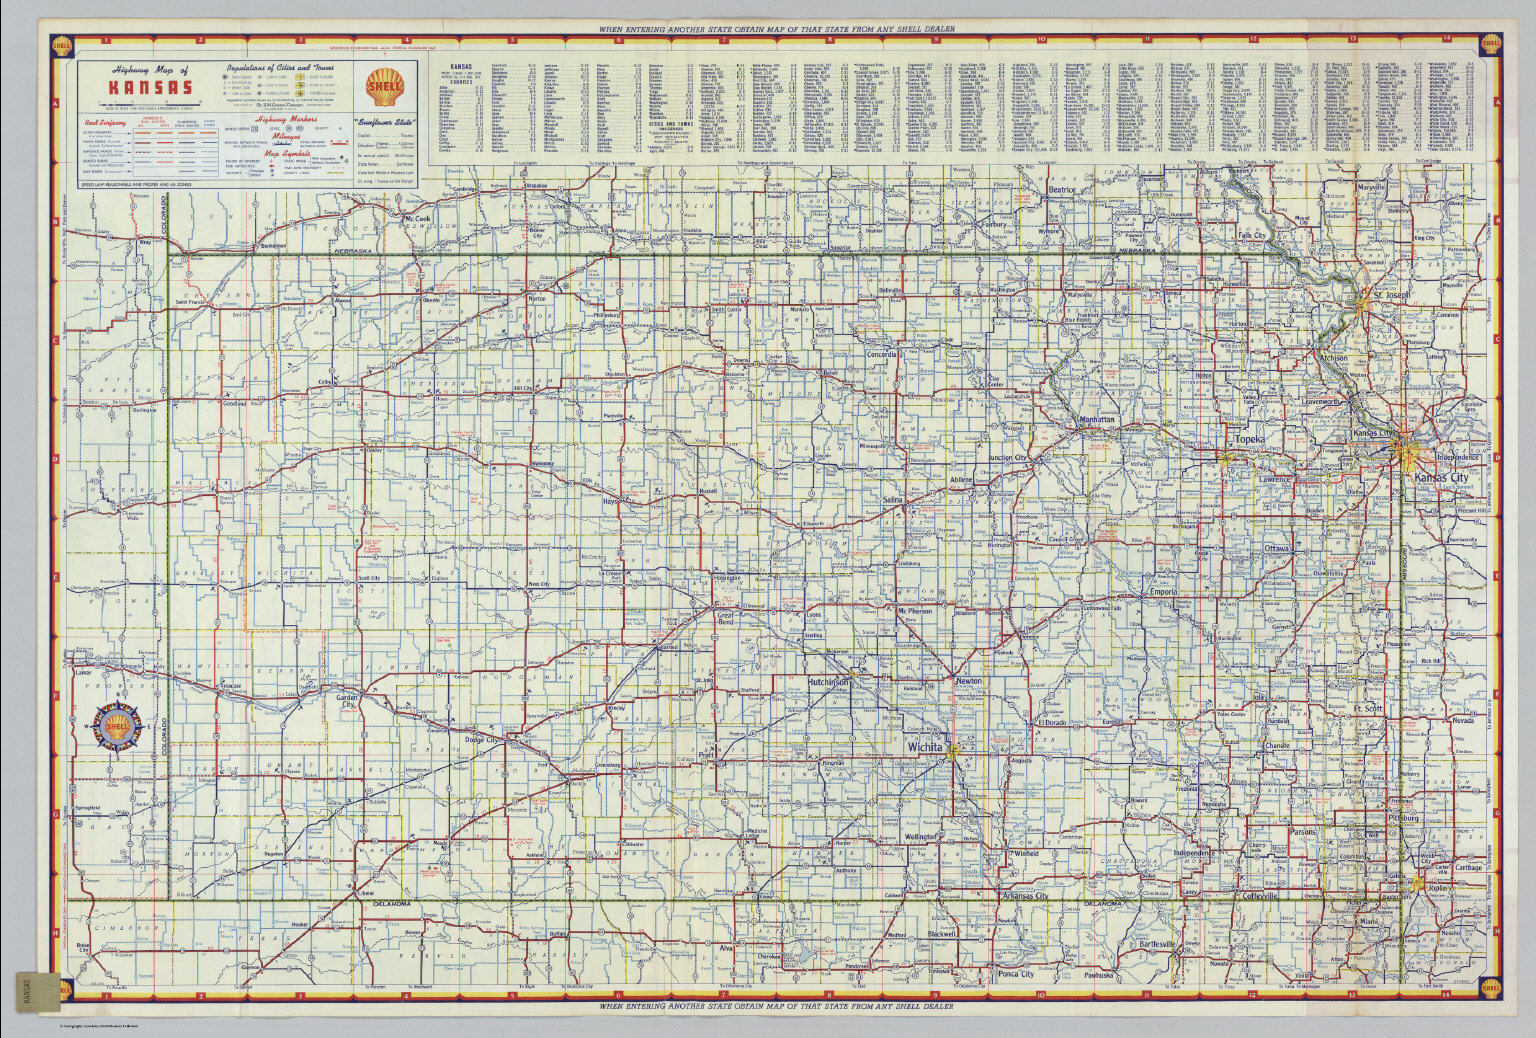 S Highway Map of Kansas. - David Rumsey Historical Map Collection on